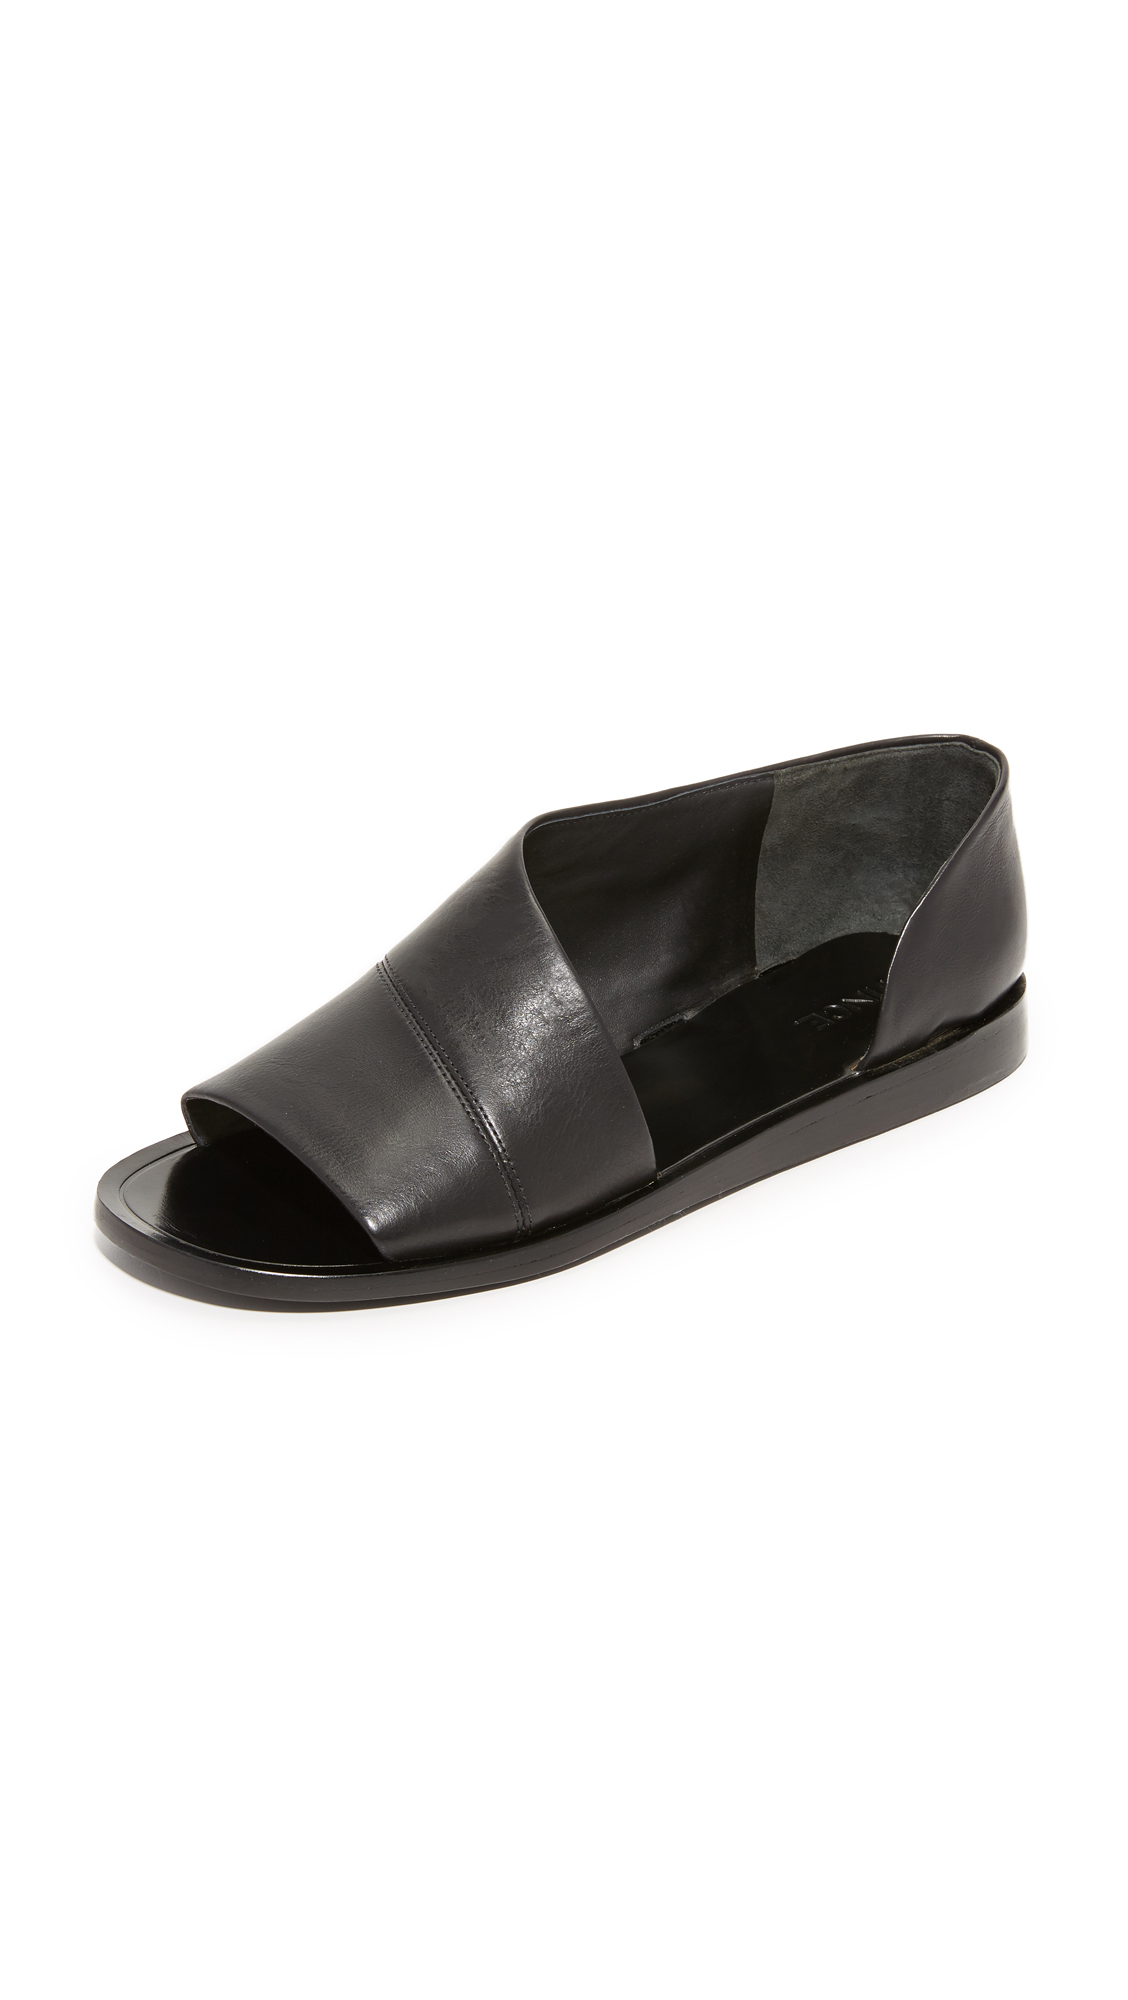 Vince Tabitha Flat Sandals Black Shoes Online Shopping At